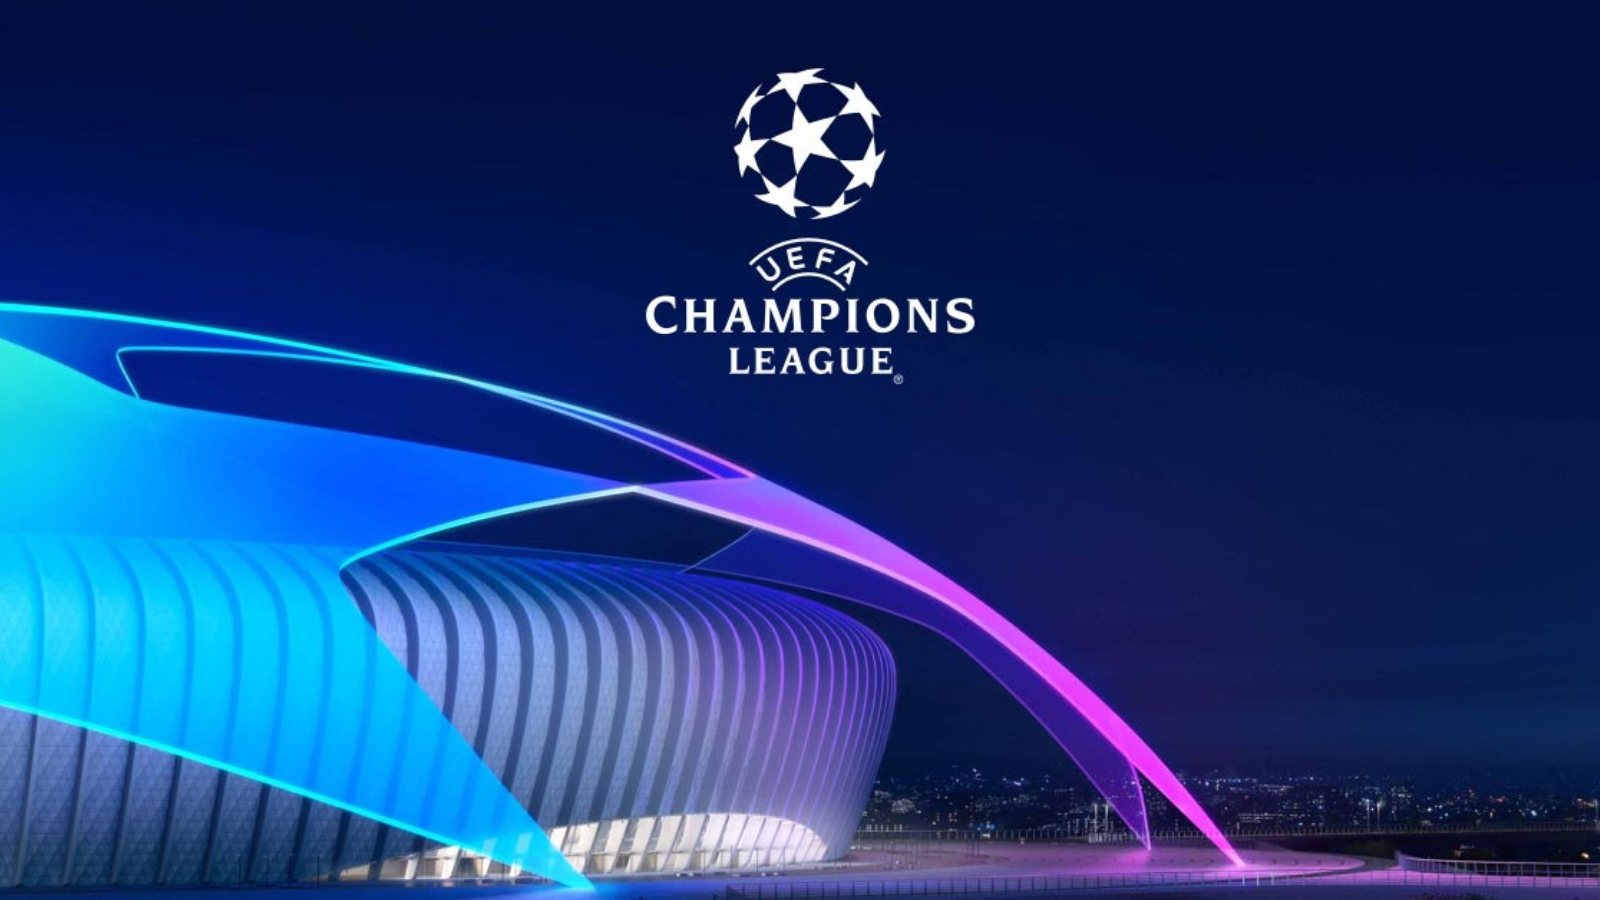 How to Watch UEFA Champions League Online Without Cable